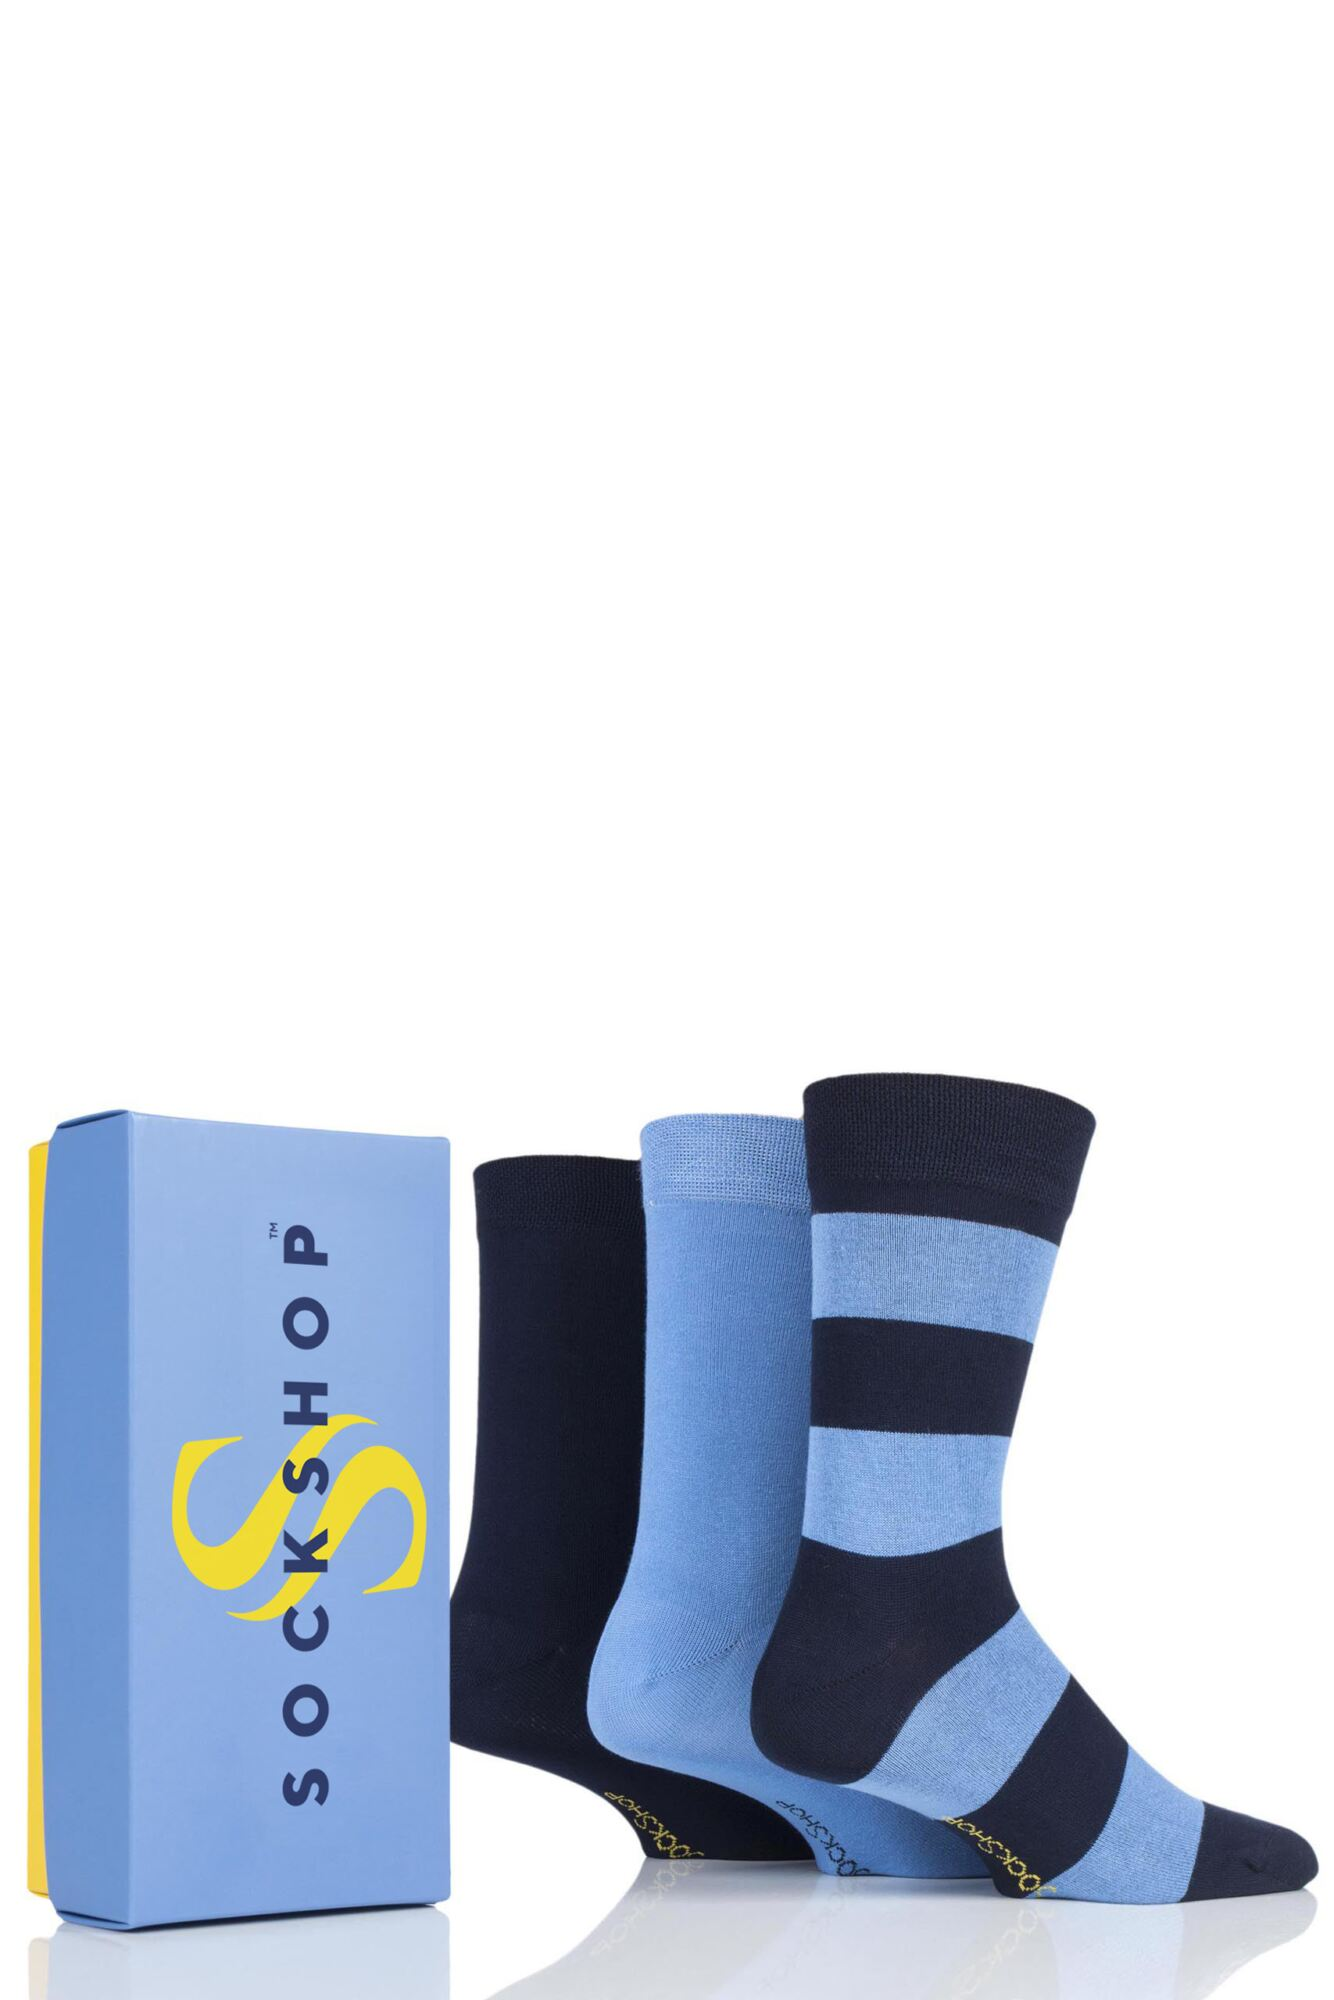 3 Pair Bamboo Bright Gift Boxed Socks Men's - SOCKSHOP